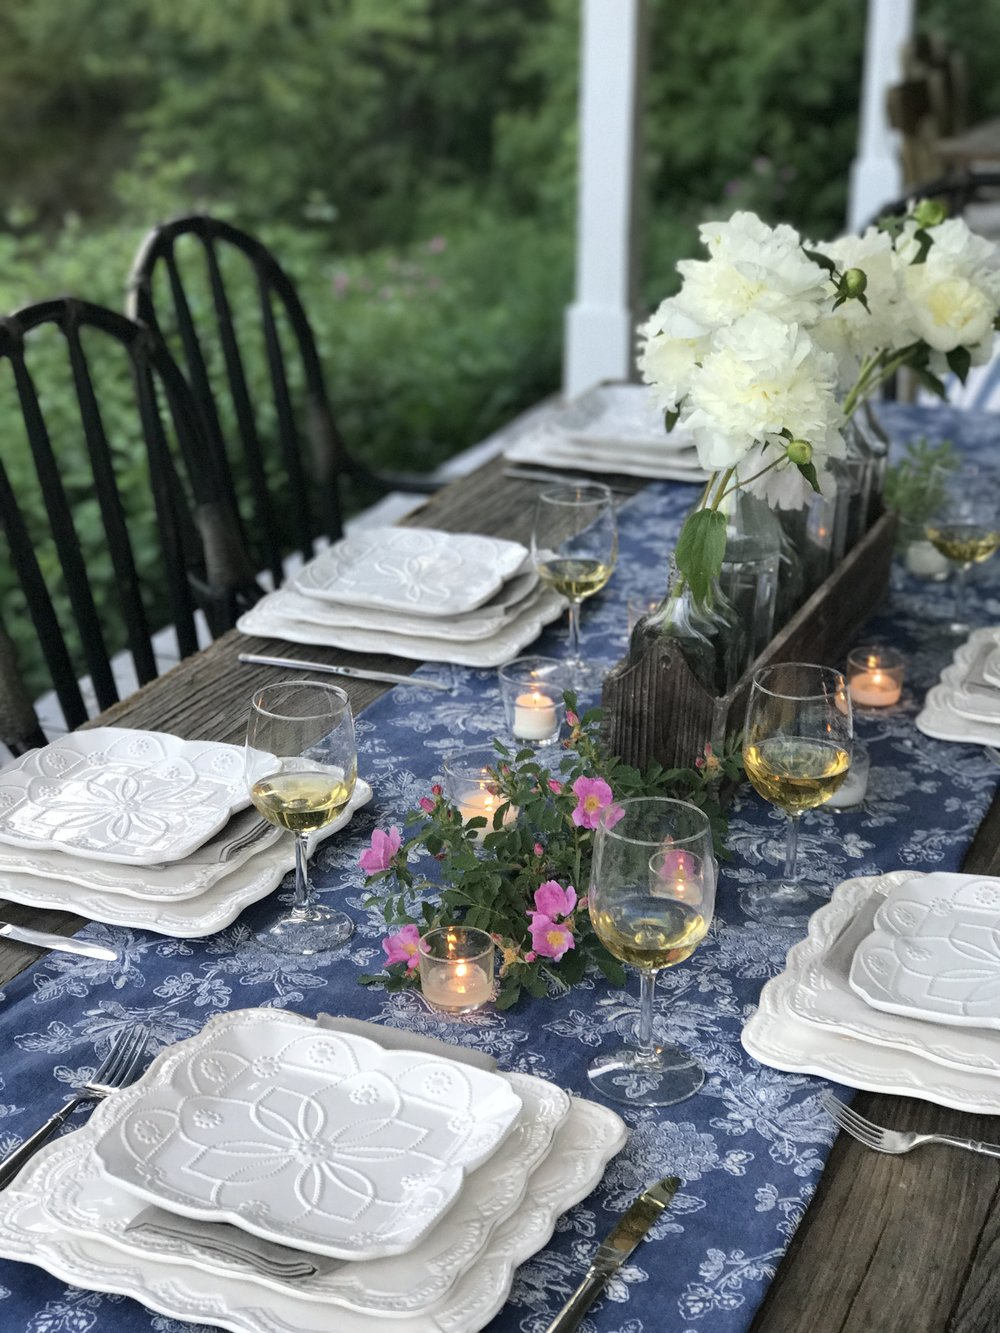 Summer Table Setting White Plates-White Peonies